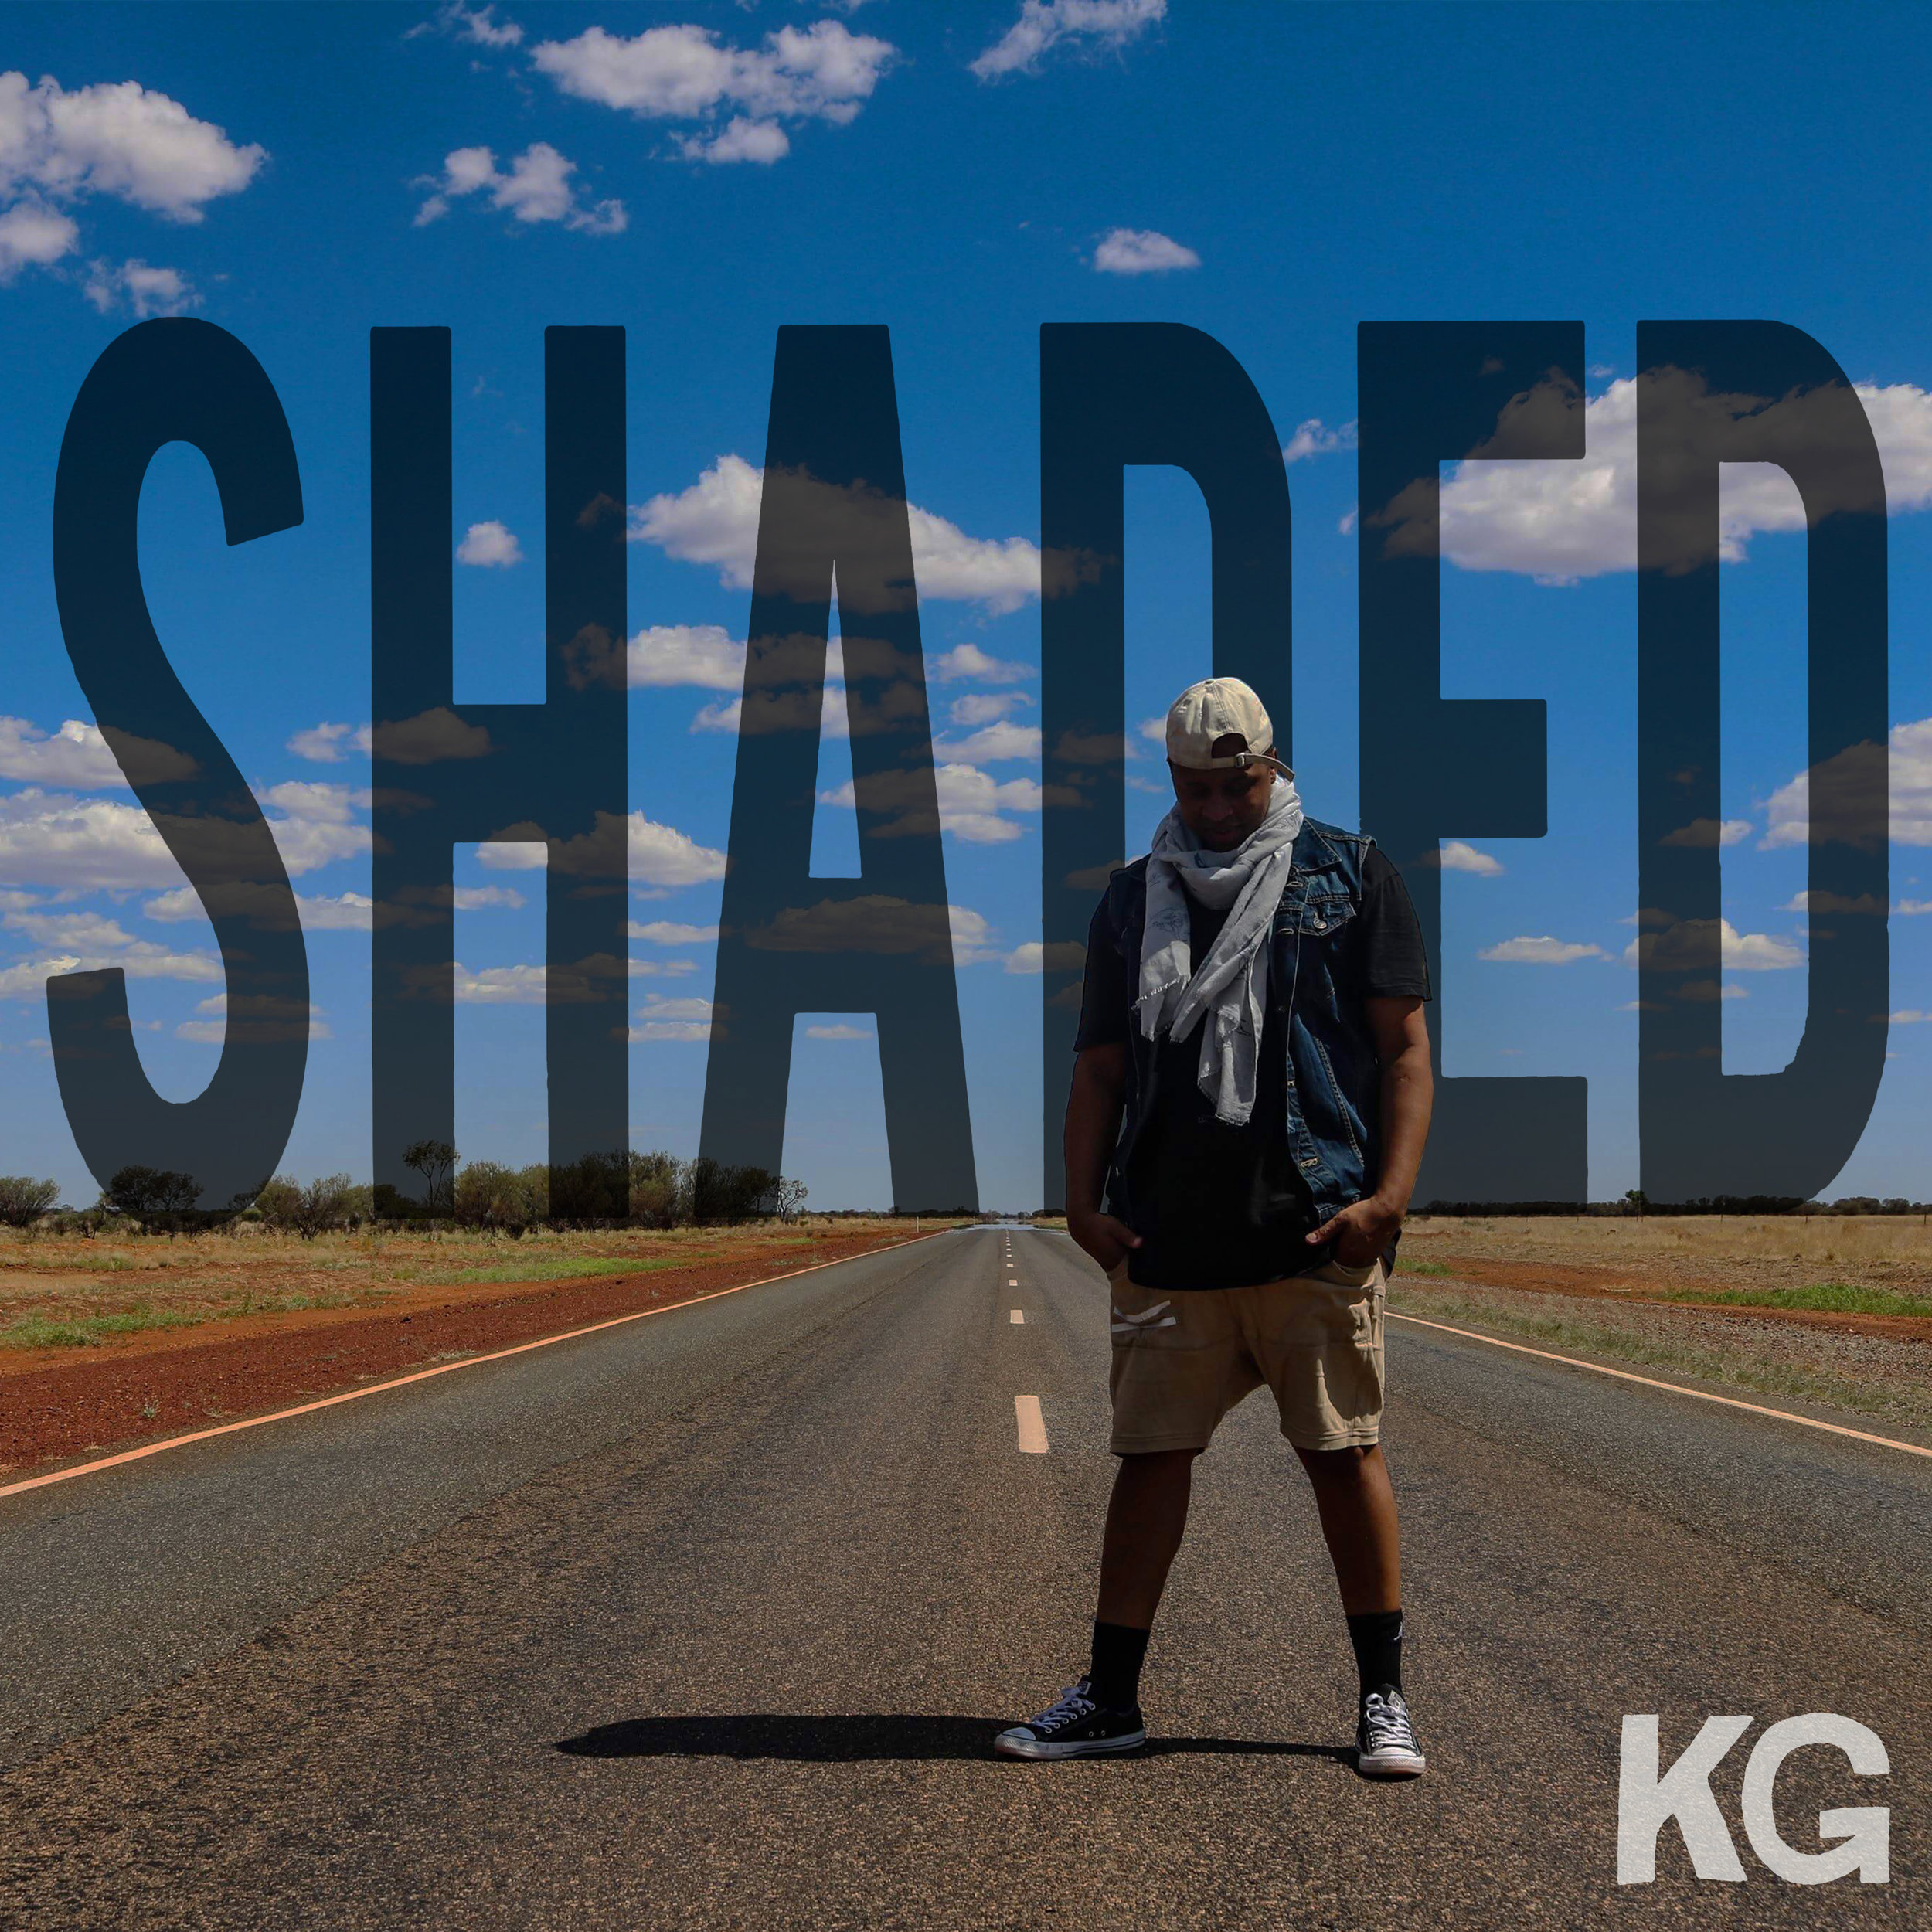 SHADED - After spending a week in Alice springs working with